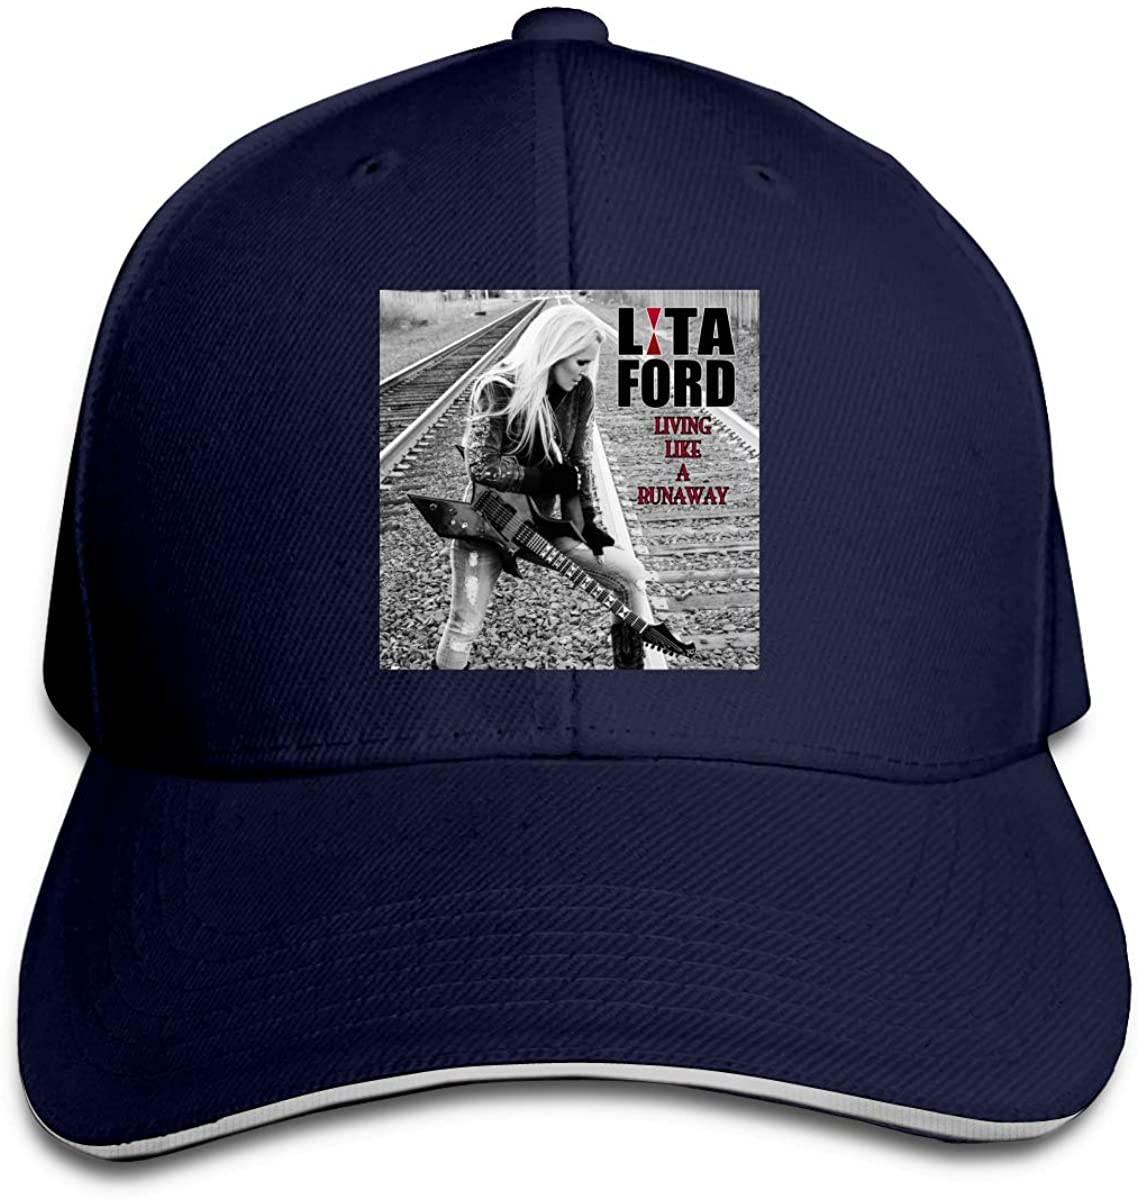 Leephen Unisex Men's Women's Baseball Caps Lita Ford Living Like A Runaway Rock Hats Adjustable Snapback Strap